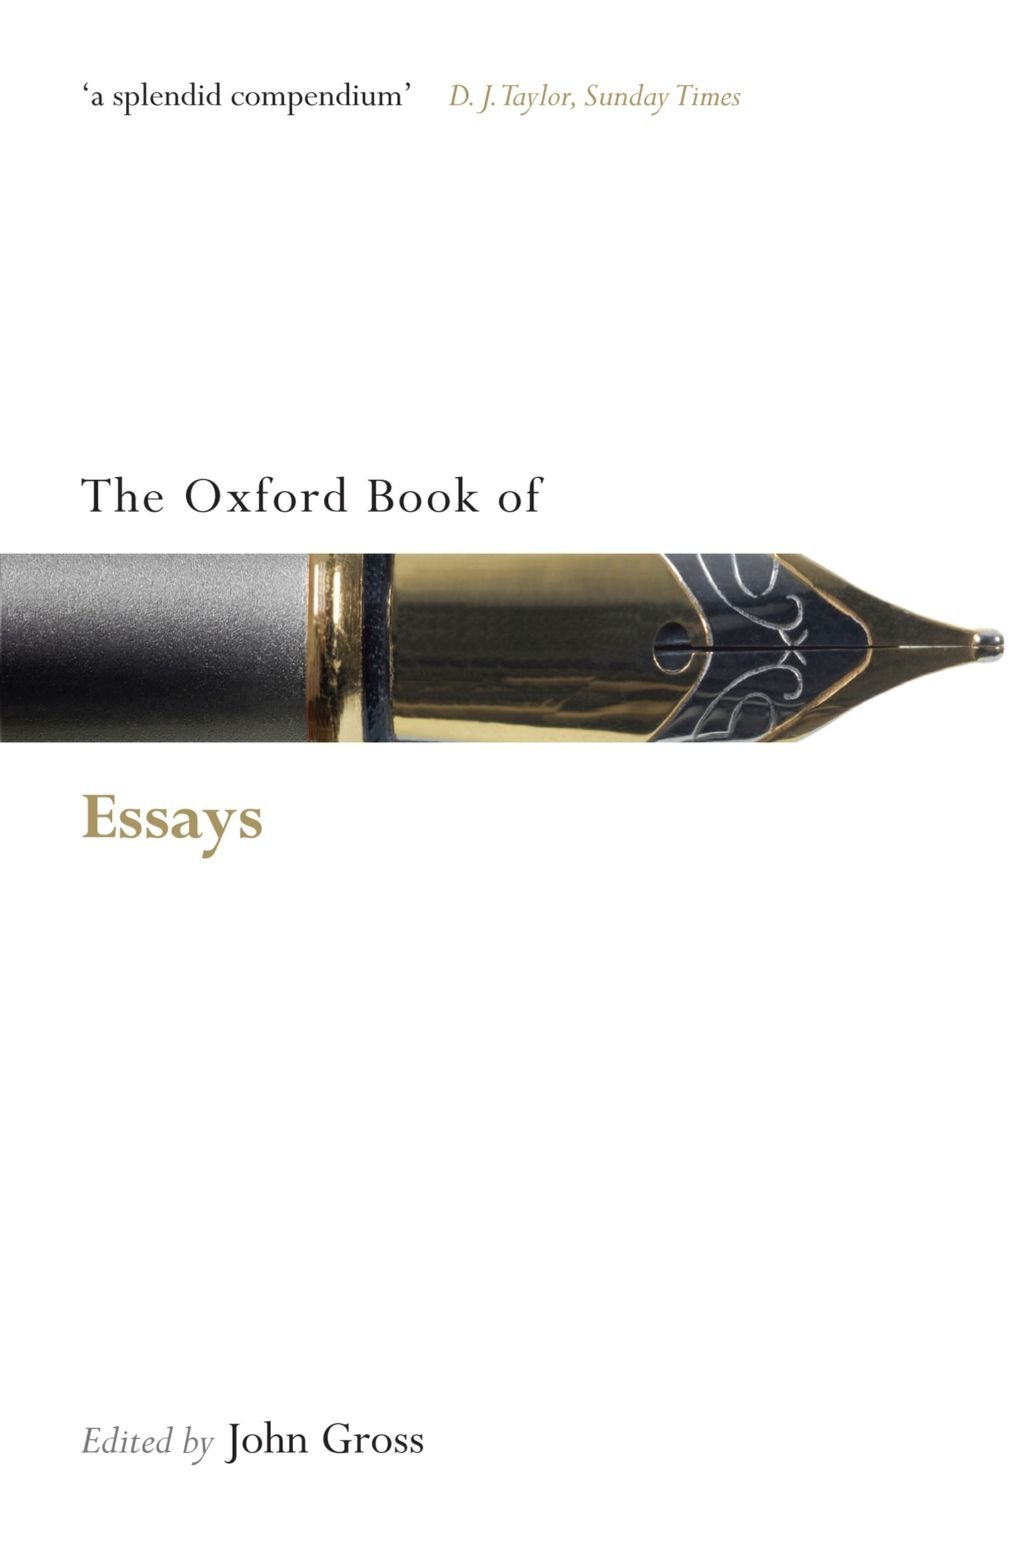 buy the oxford book of essays oxford books of prose verse book buy the oxford book of essays oxford books of prose verse book online at low prices in the oxford book of essays oxford books of prose verse